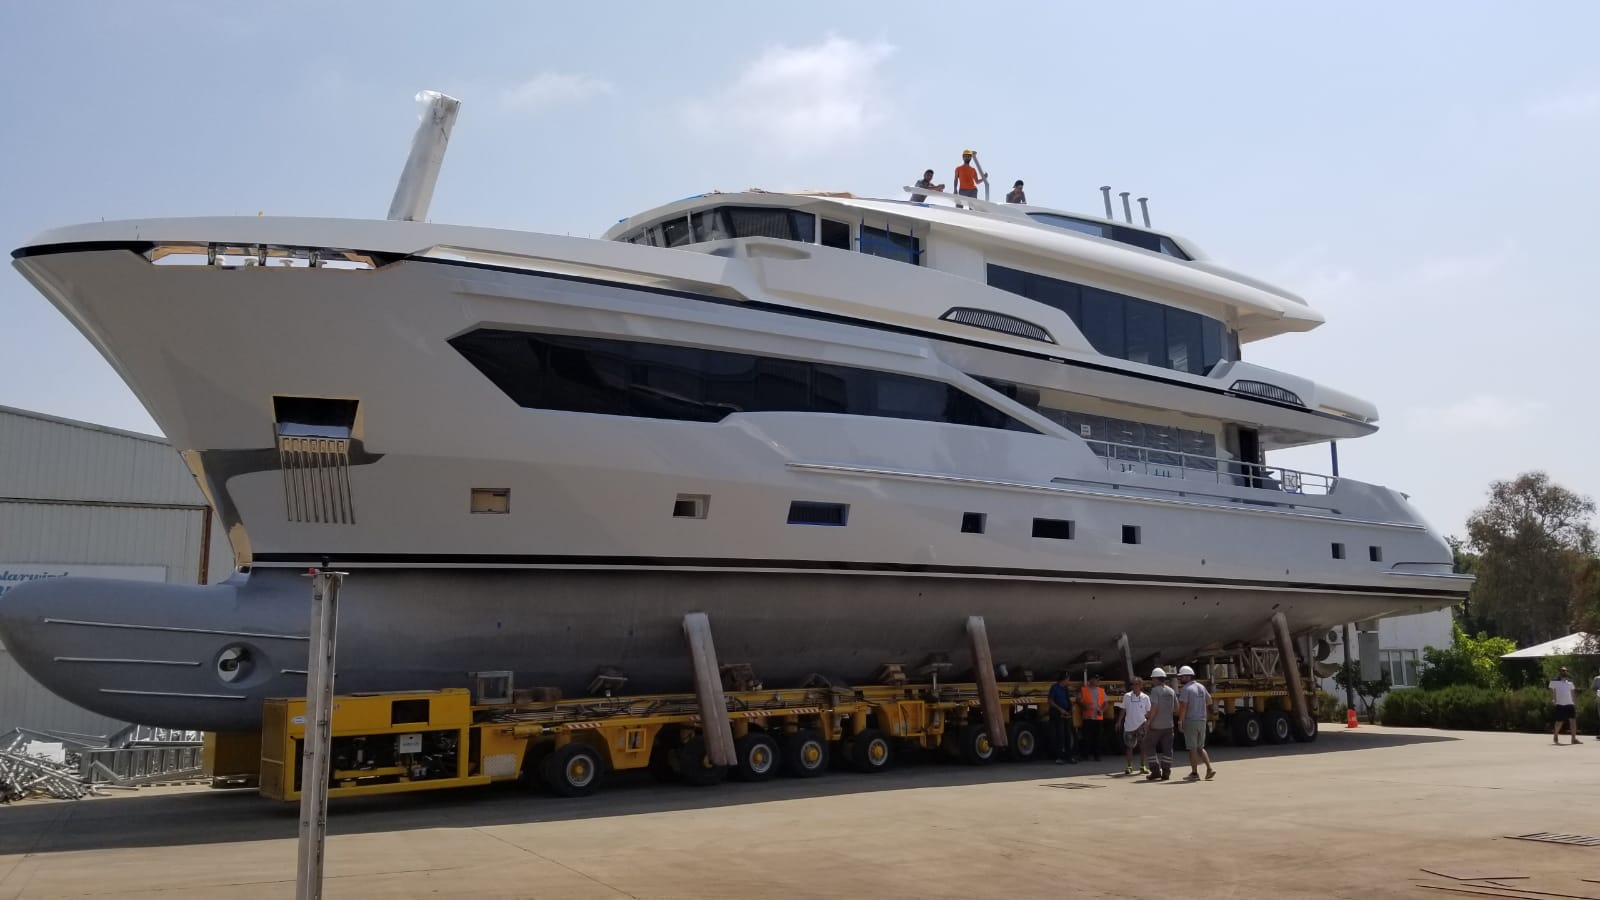 Kando 110 Superyacht for sale with Yacht & Villa emerges from hangar